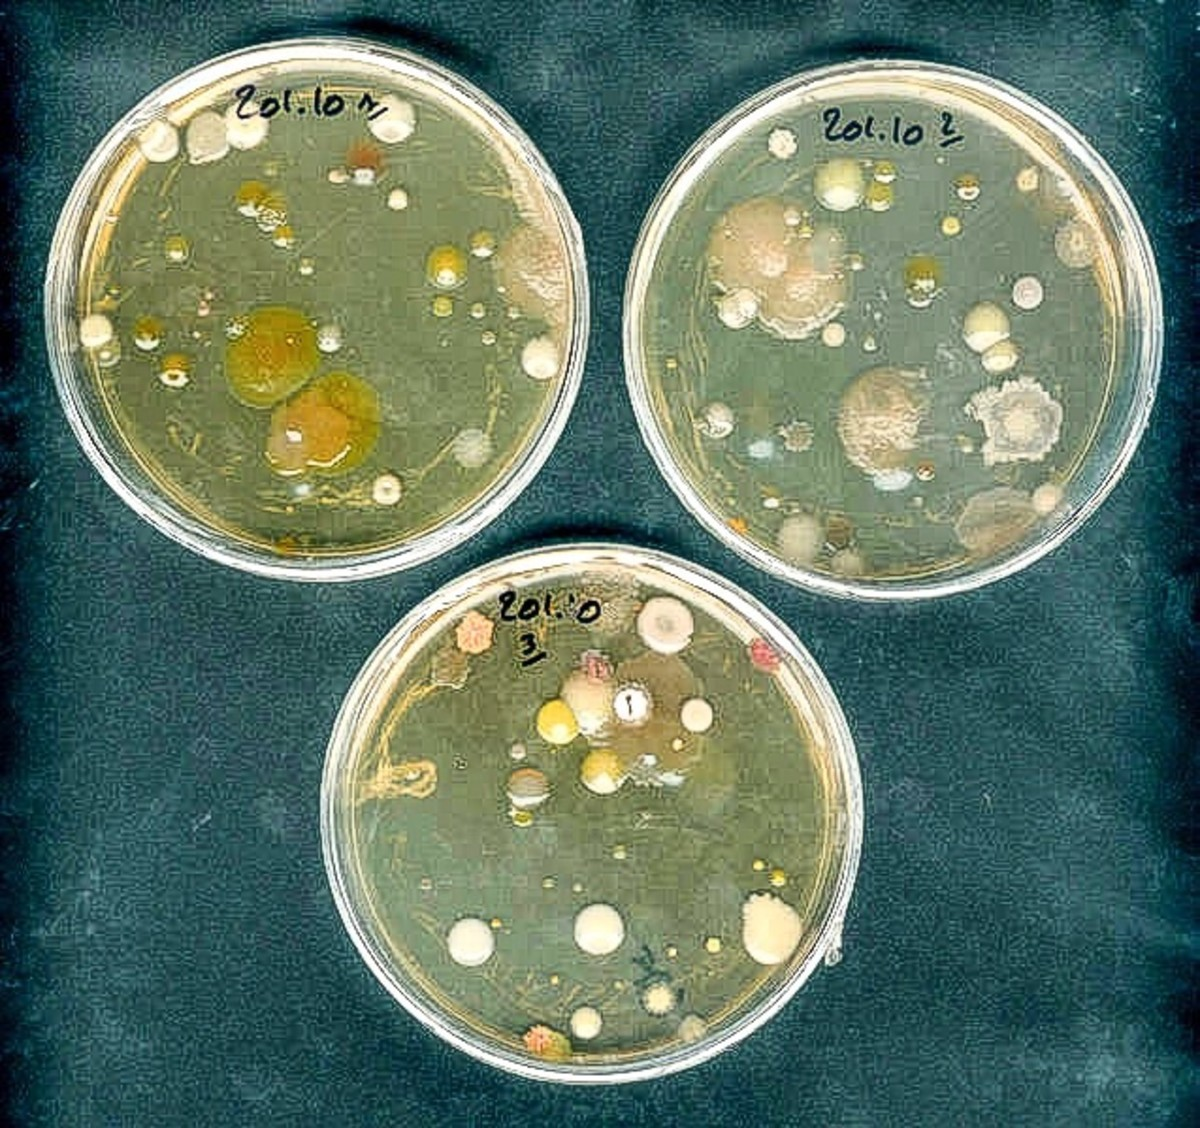 Cultures of soil bacteria growing in Petri dishes in a laboratory